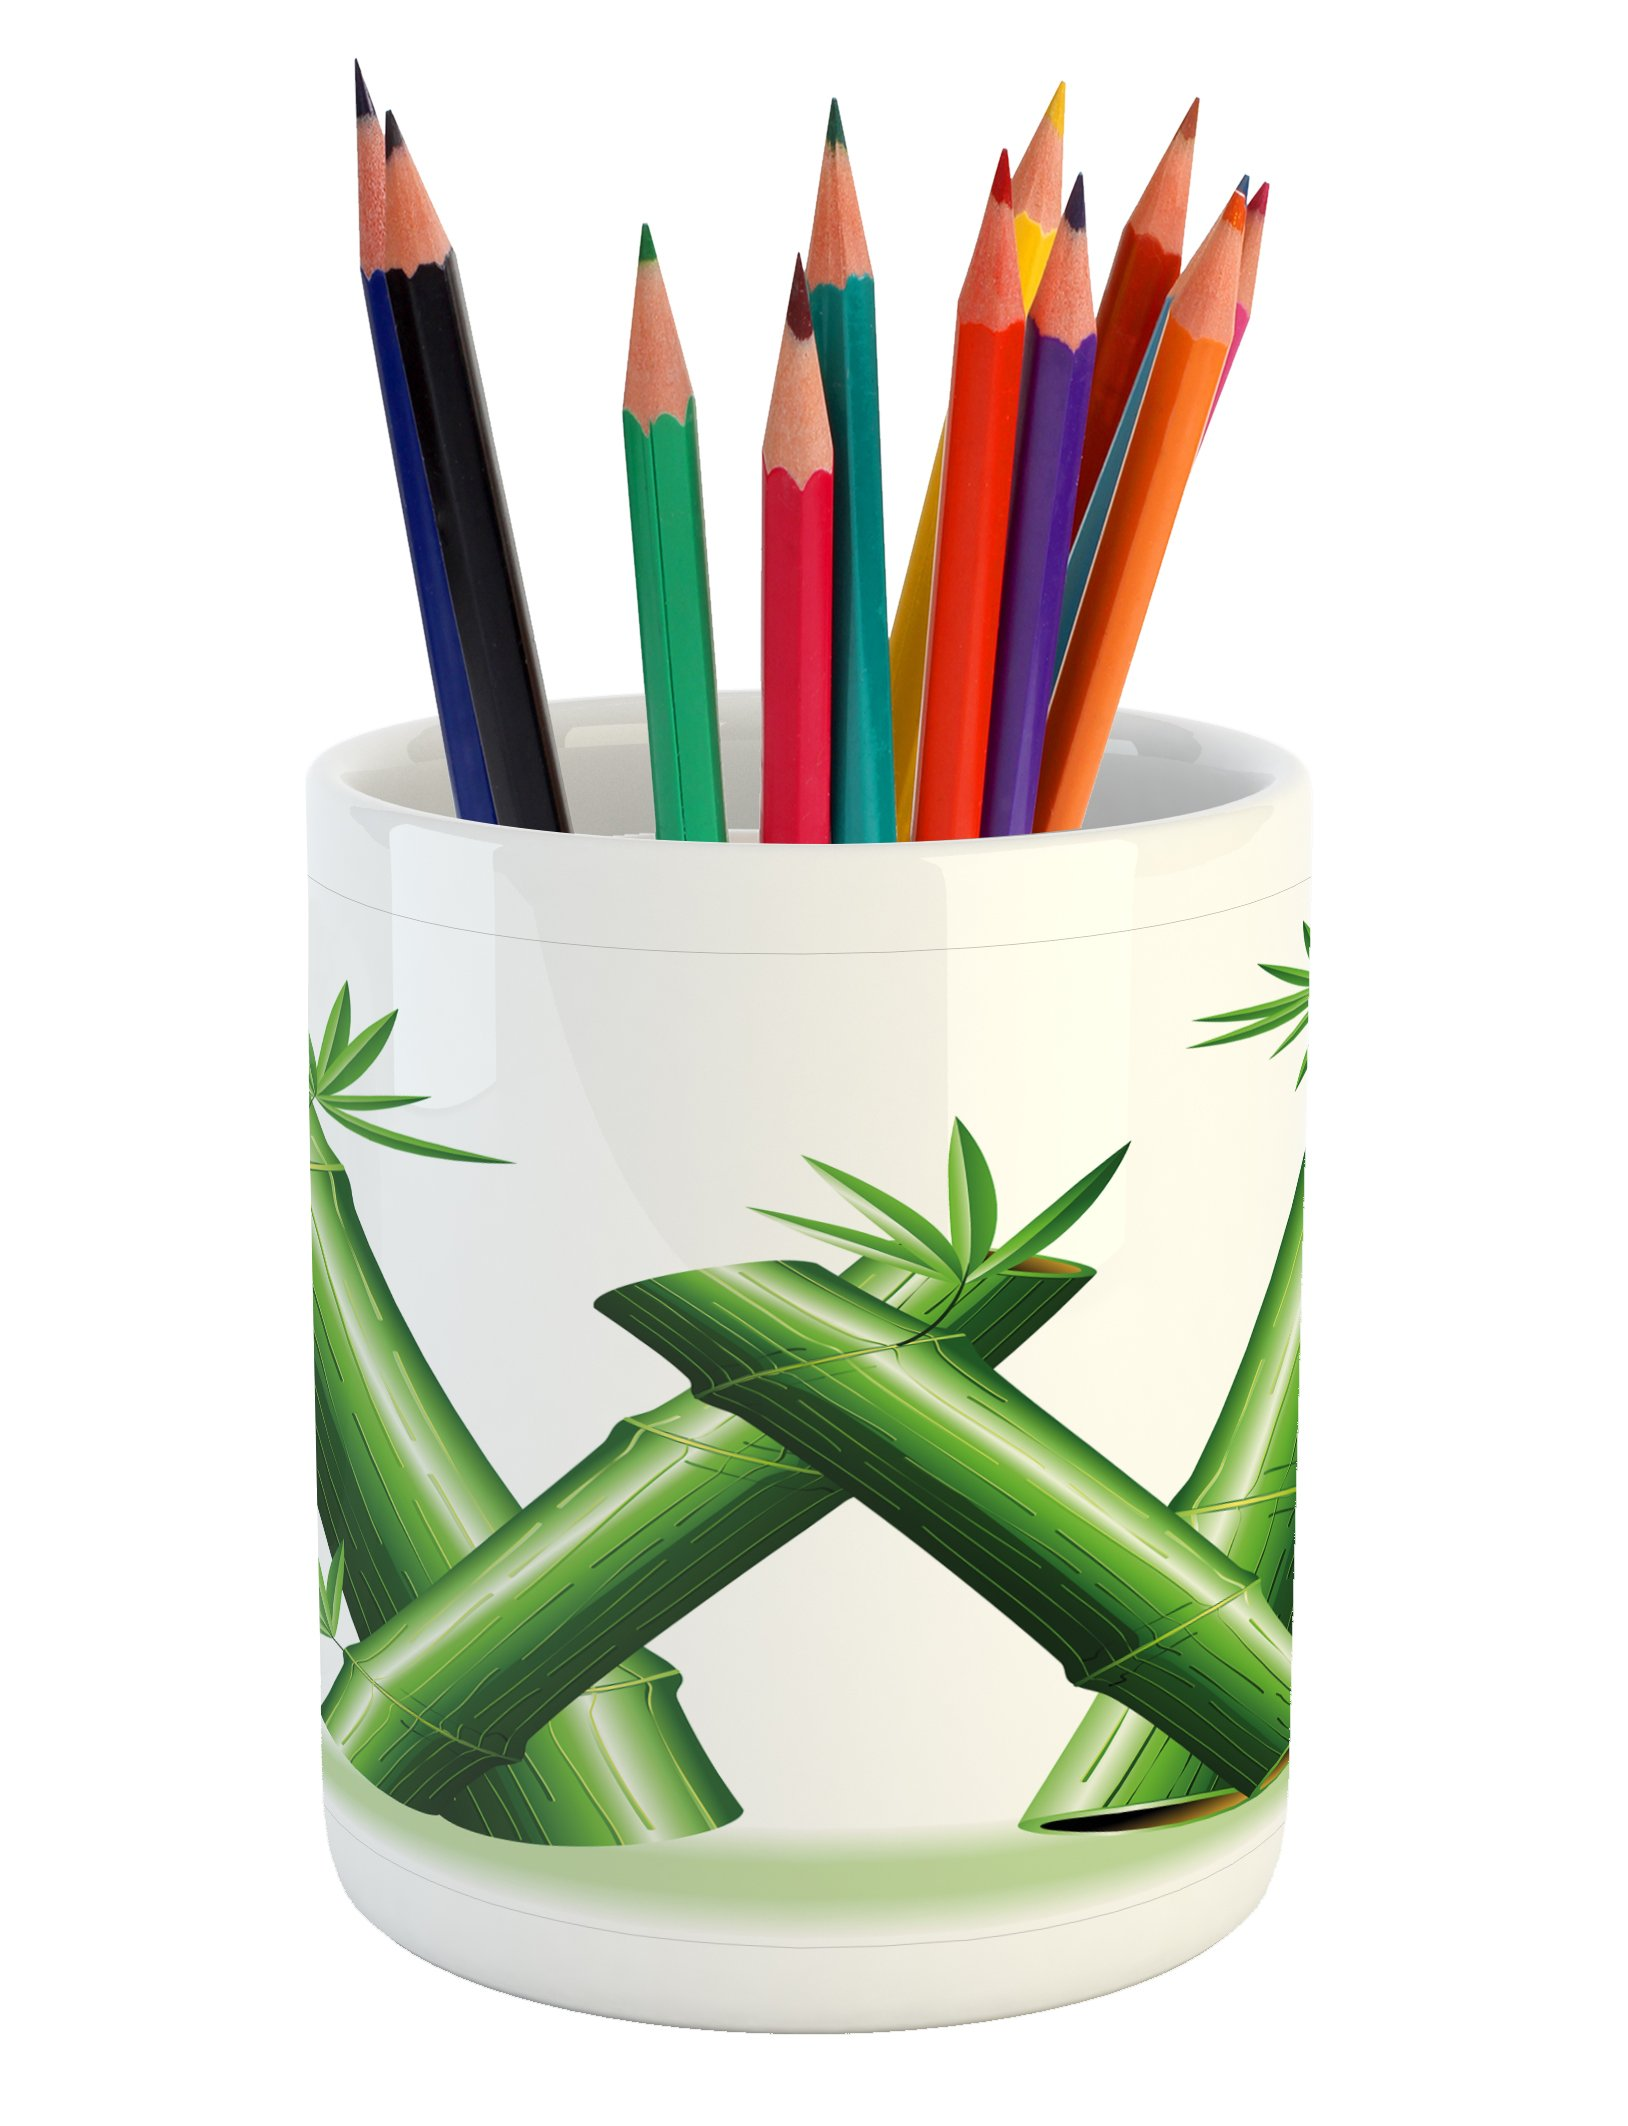 Ambesonne Letter W Pencil Pen Holder, Bamboo Branches Forming Letter W Zen Spa Themed Alphabet Typeset Green Leaves, Printed Ceramic Pencil Pen Holder for Desk Office Accessory, Green White